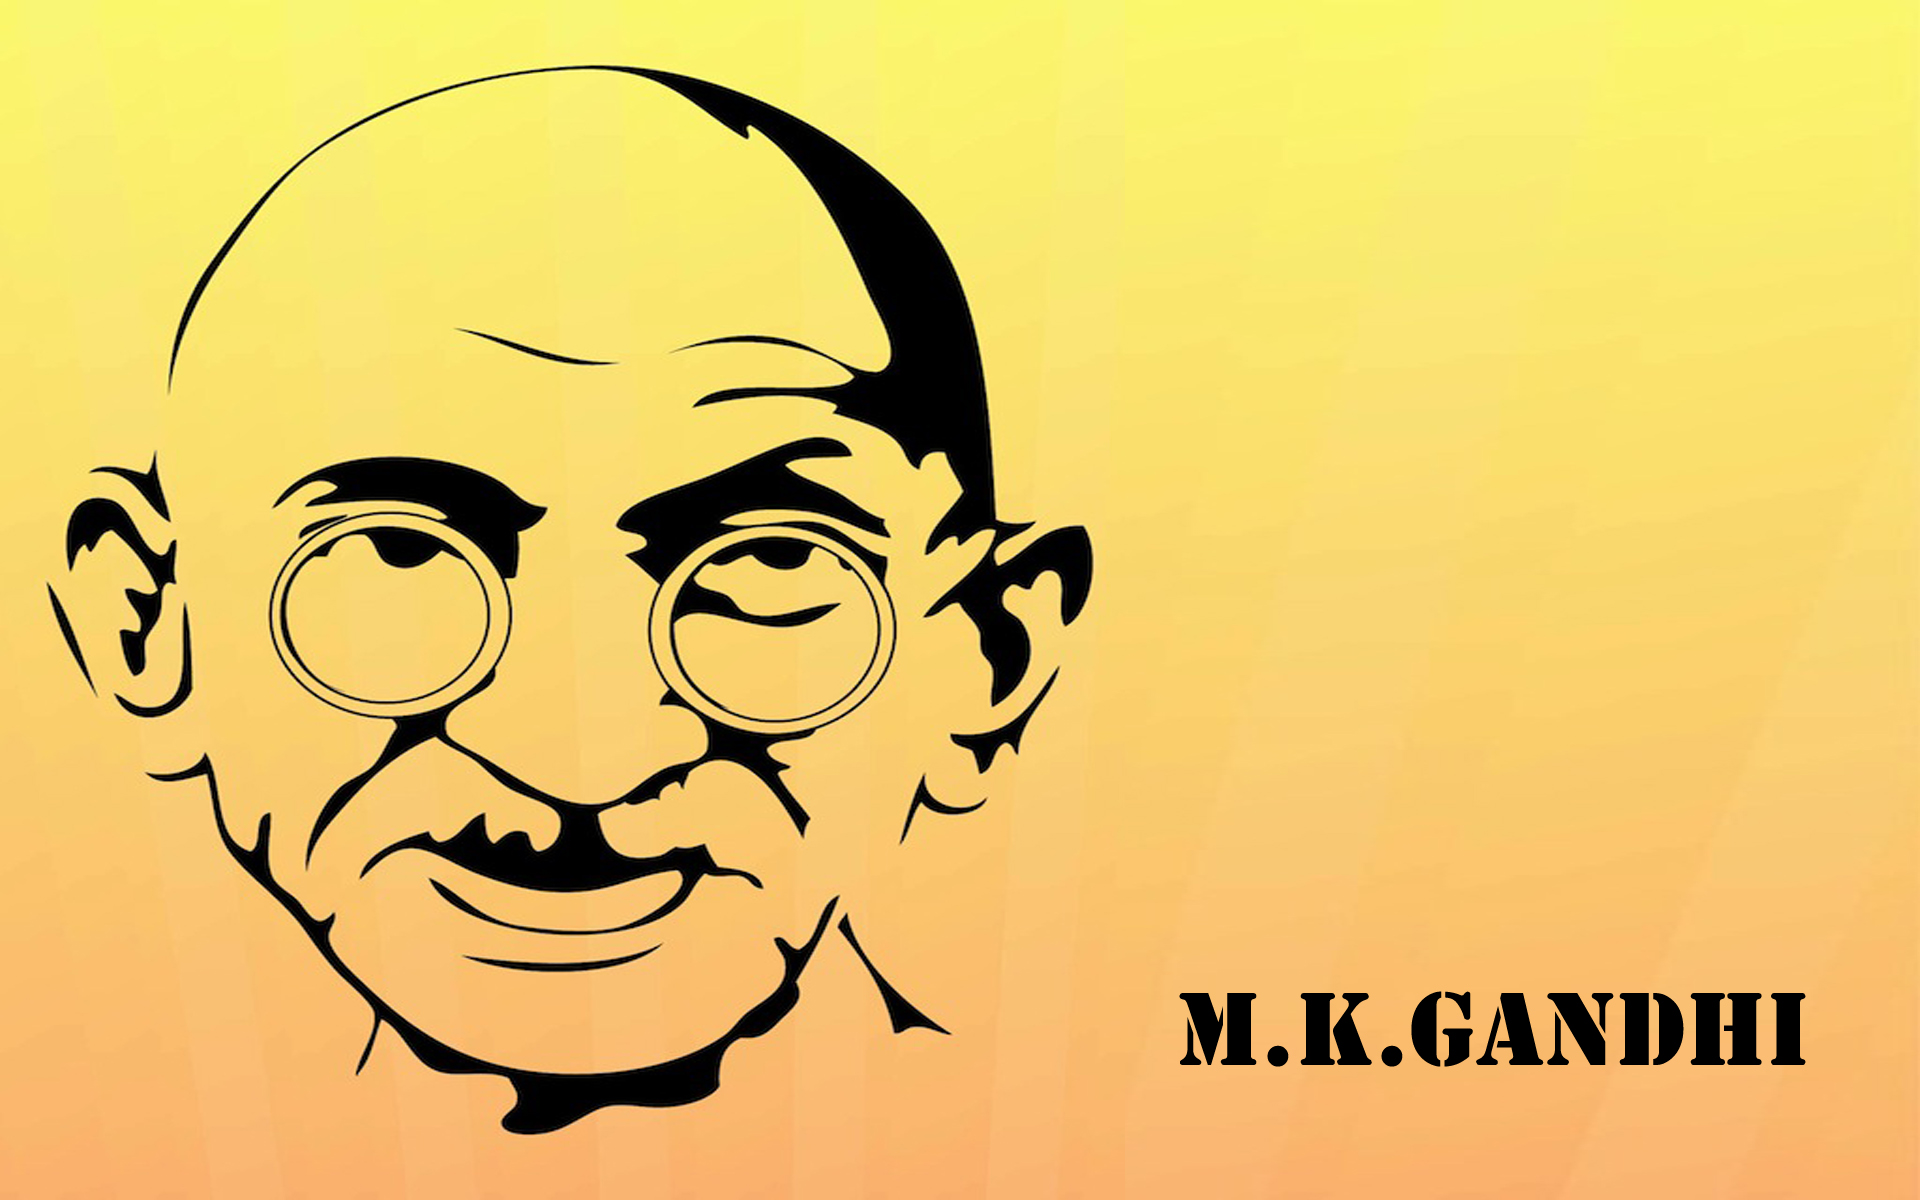 Mahatma-Gandhi-Jayanti-2014-Messages6